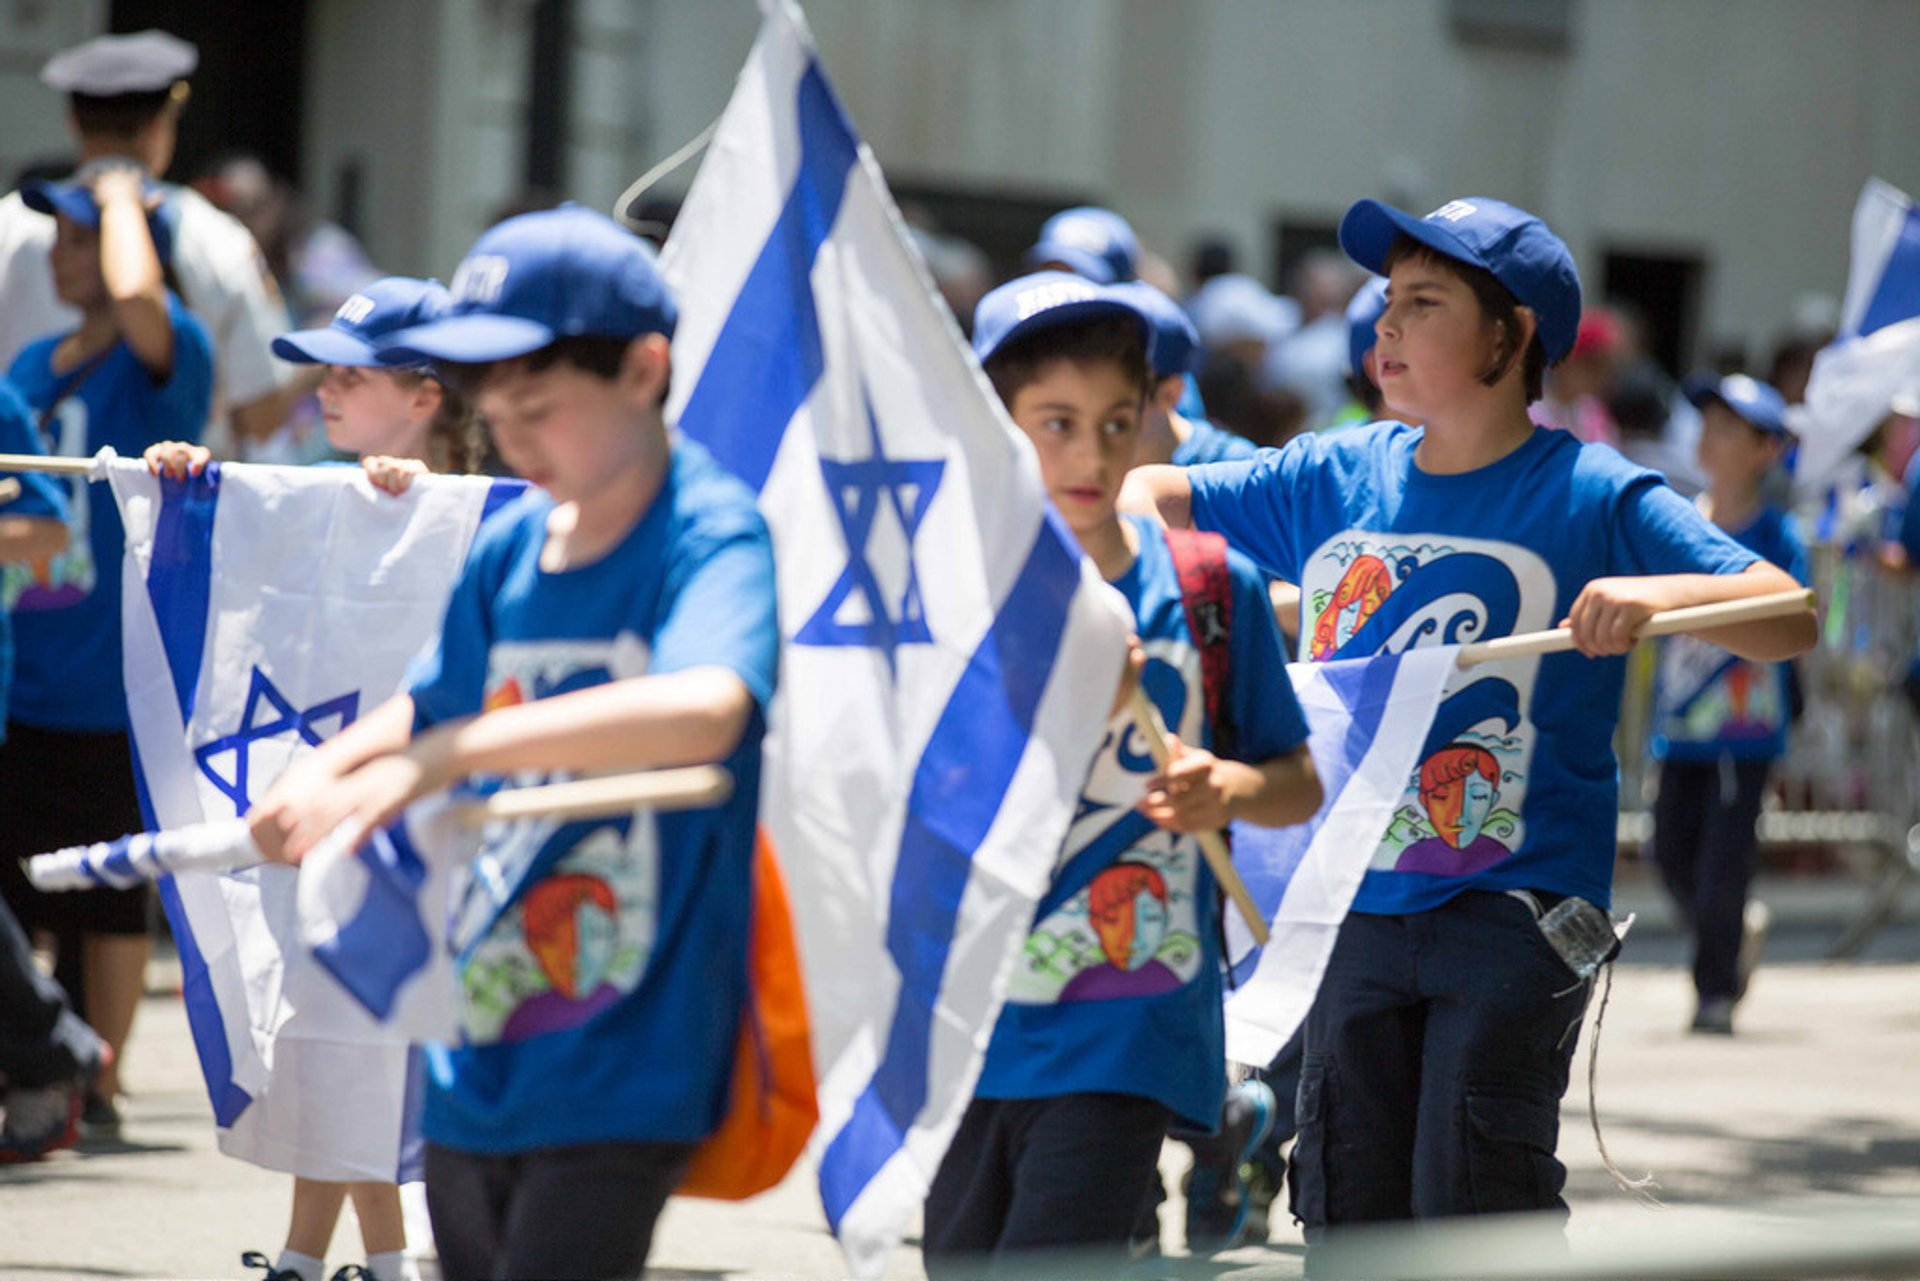 Best time for Celebrate Israel Parade in New York 2020